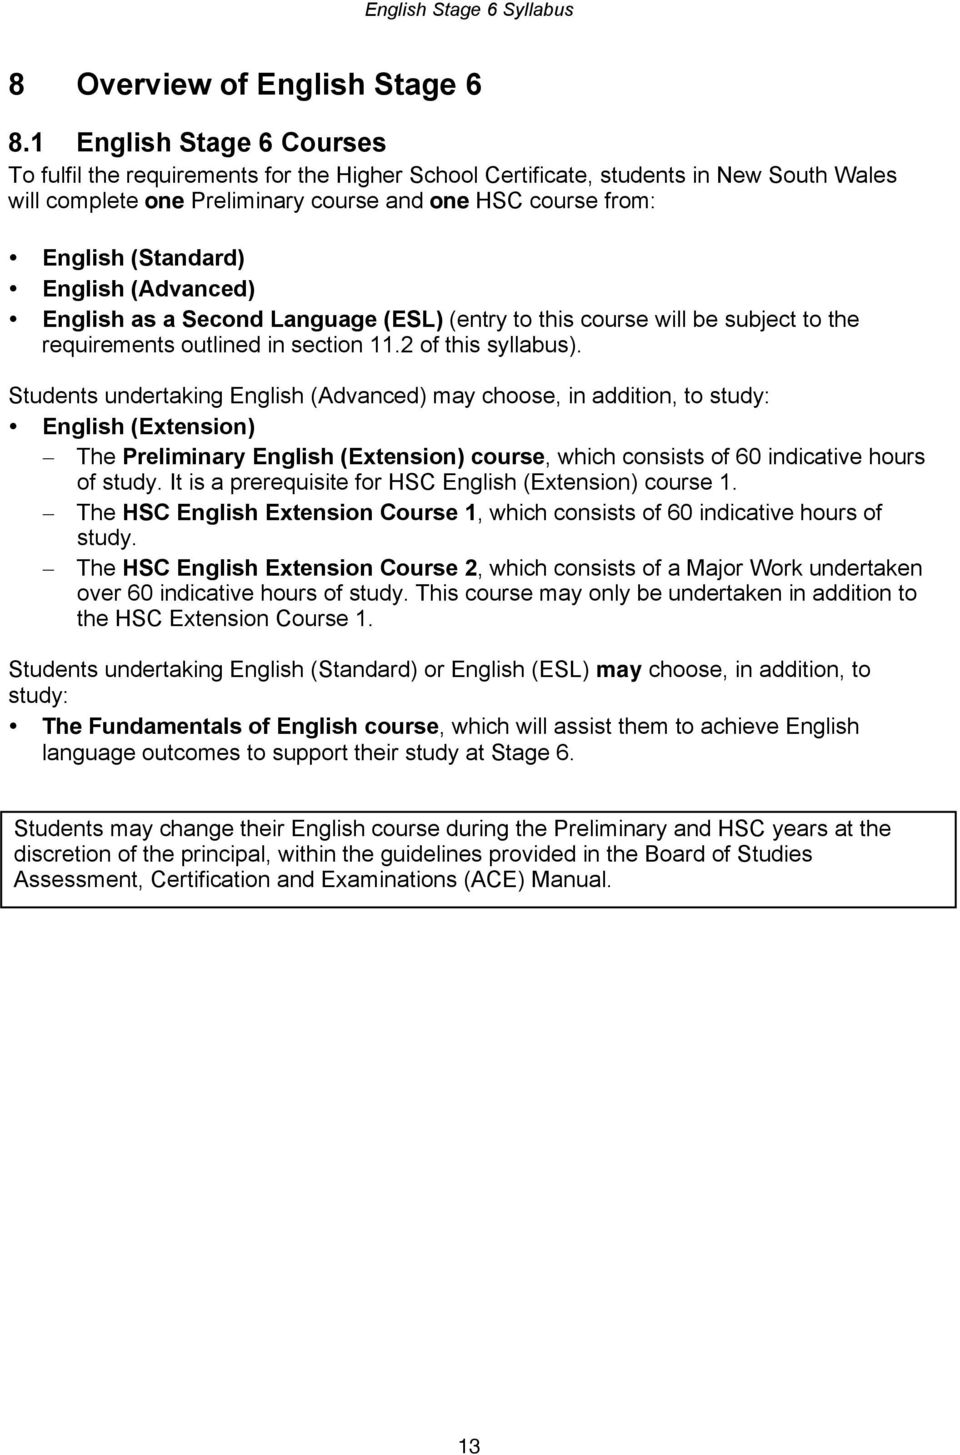 English (Advanced) English as a Second Language (ESL) (entry to this course will be subject to the requirements outlined in section 11.2 of this syllabus).